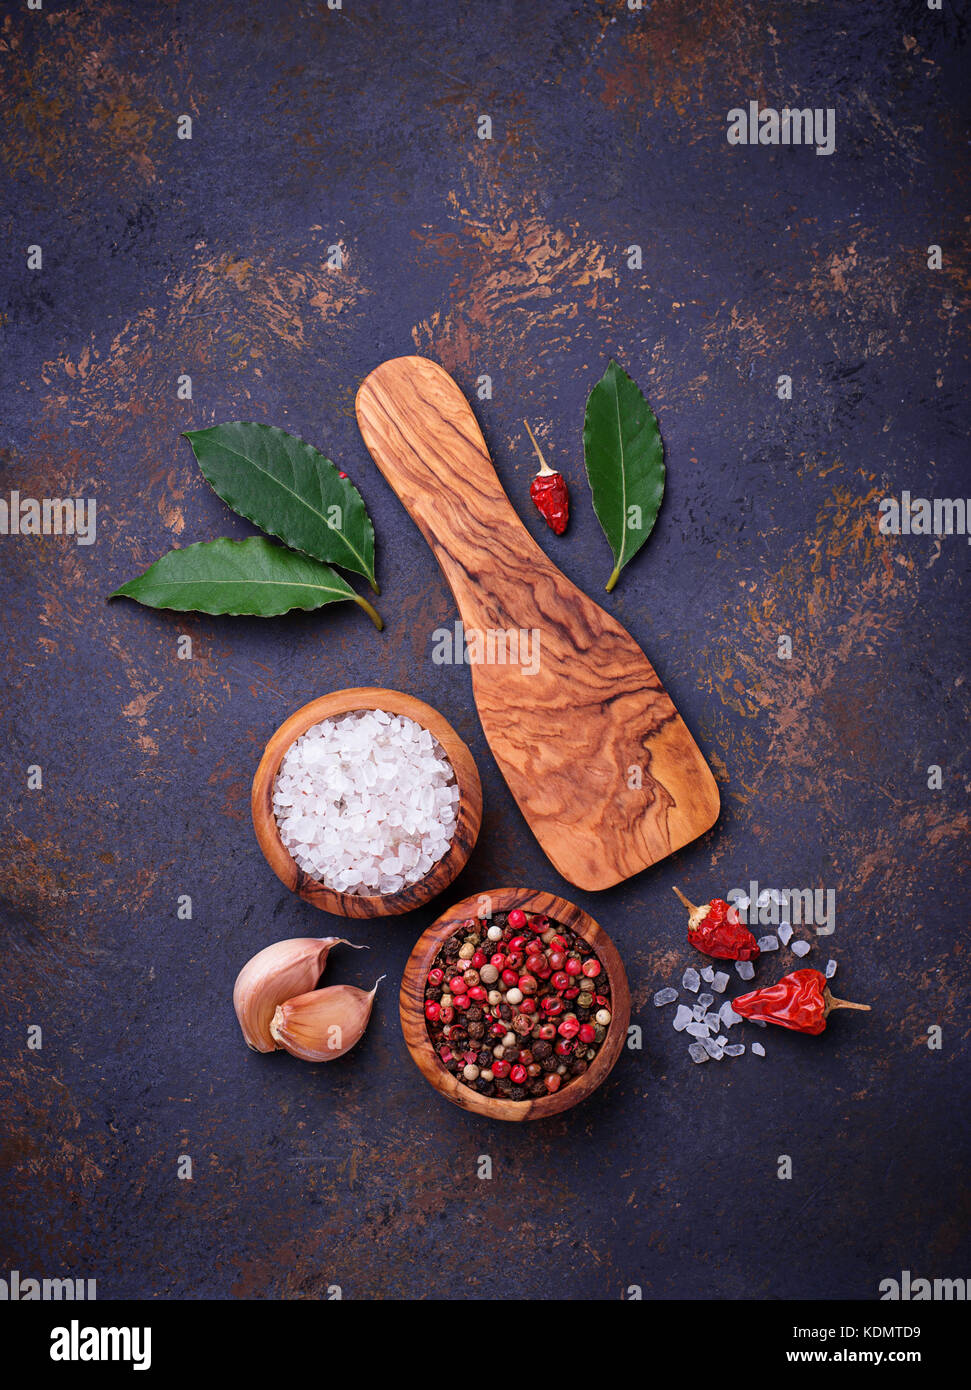 Herbs and spices. Culinary background - Stock Image